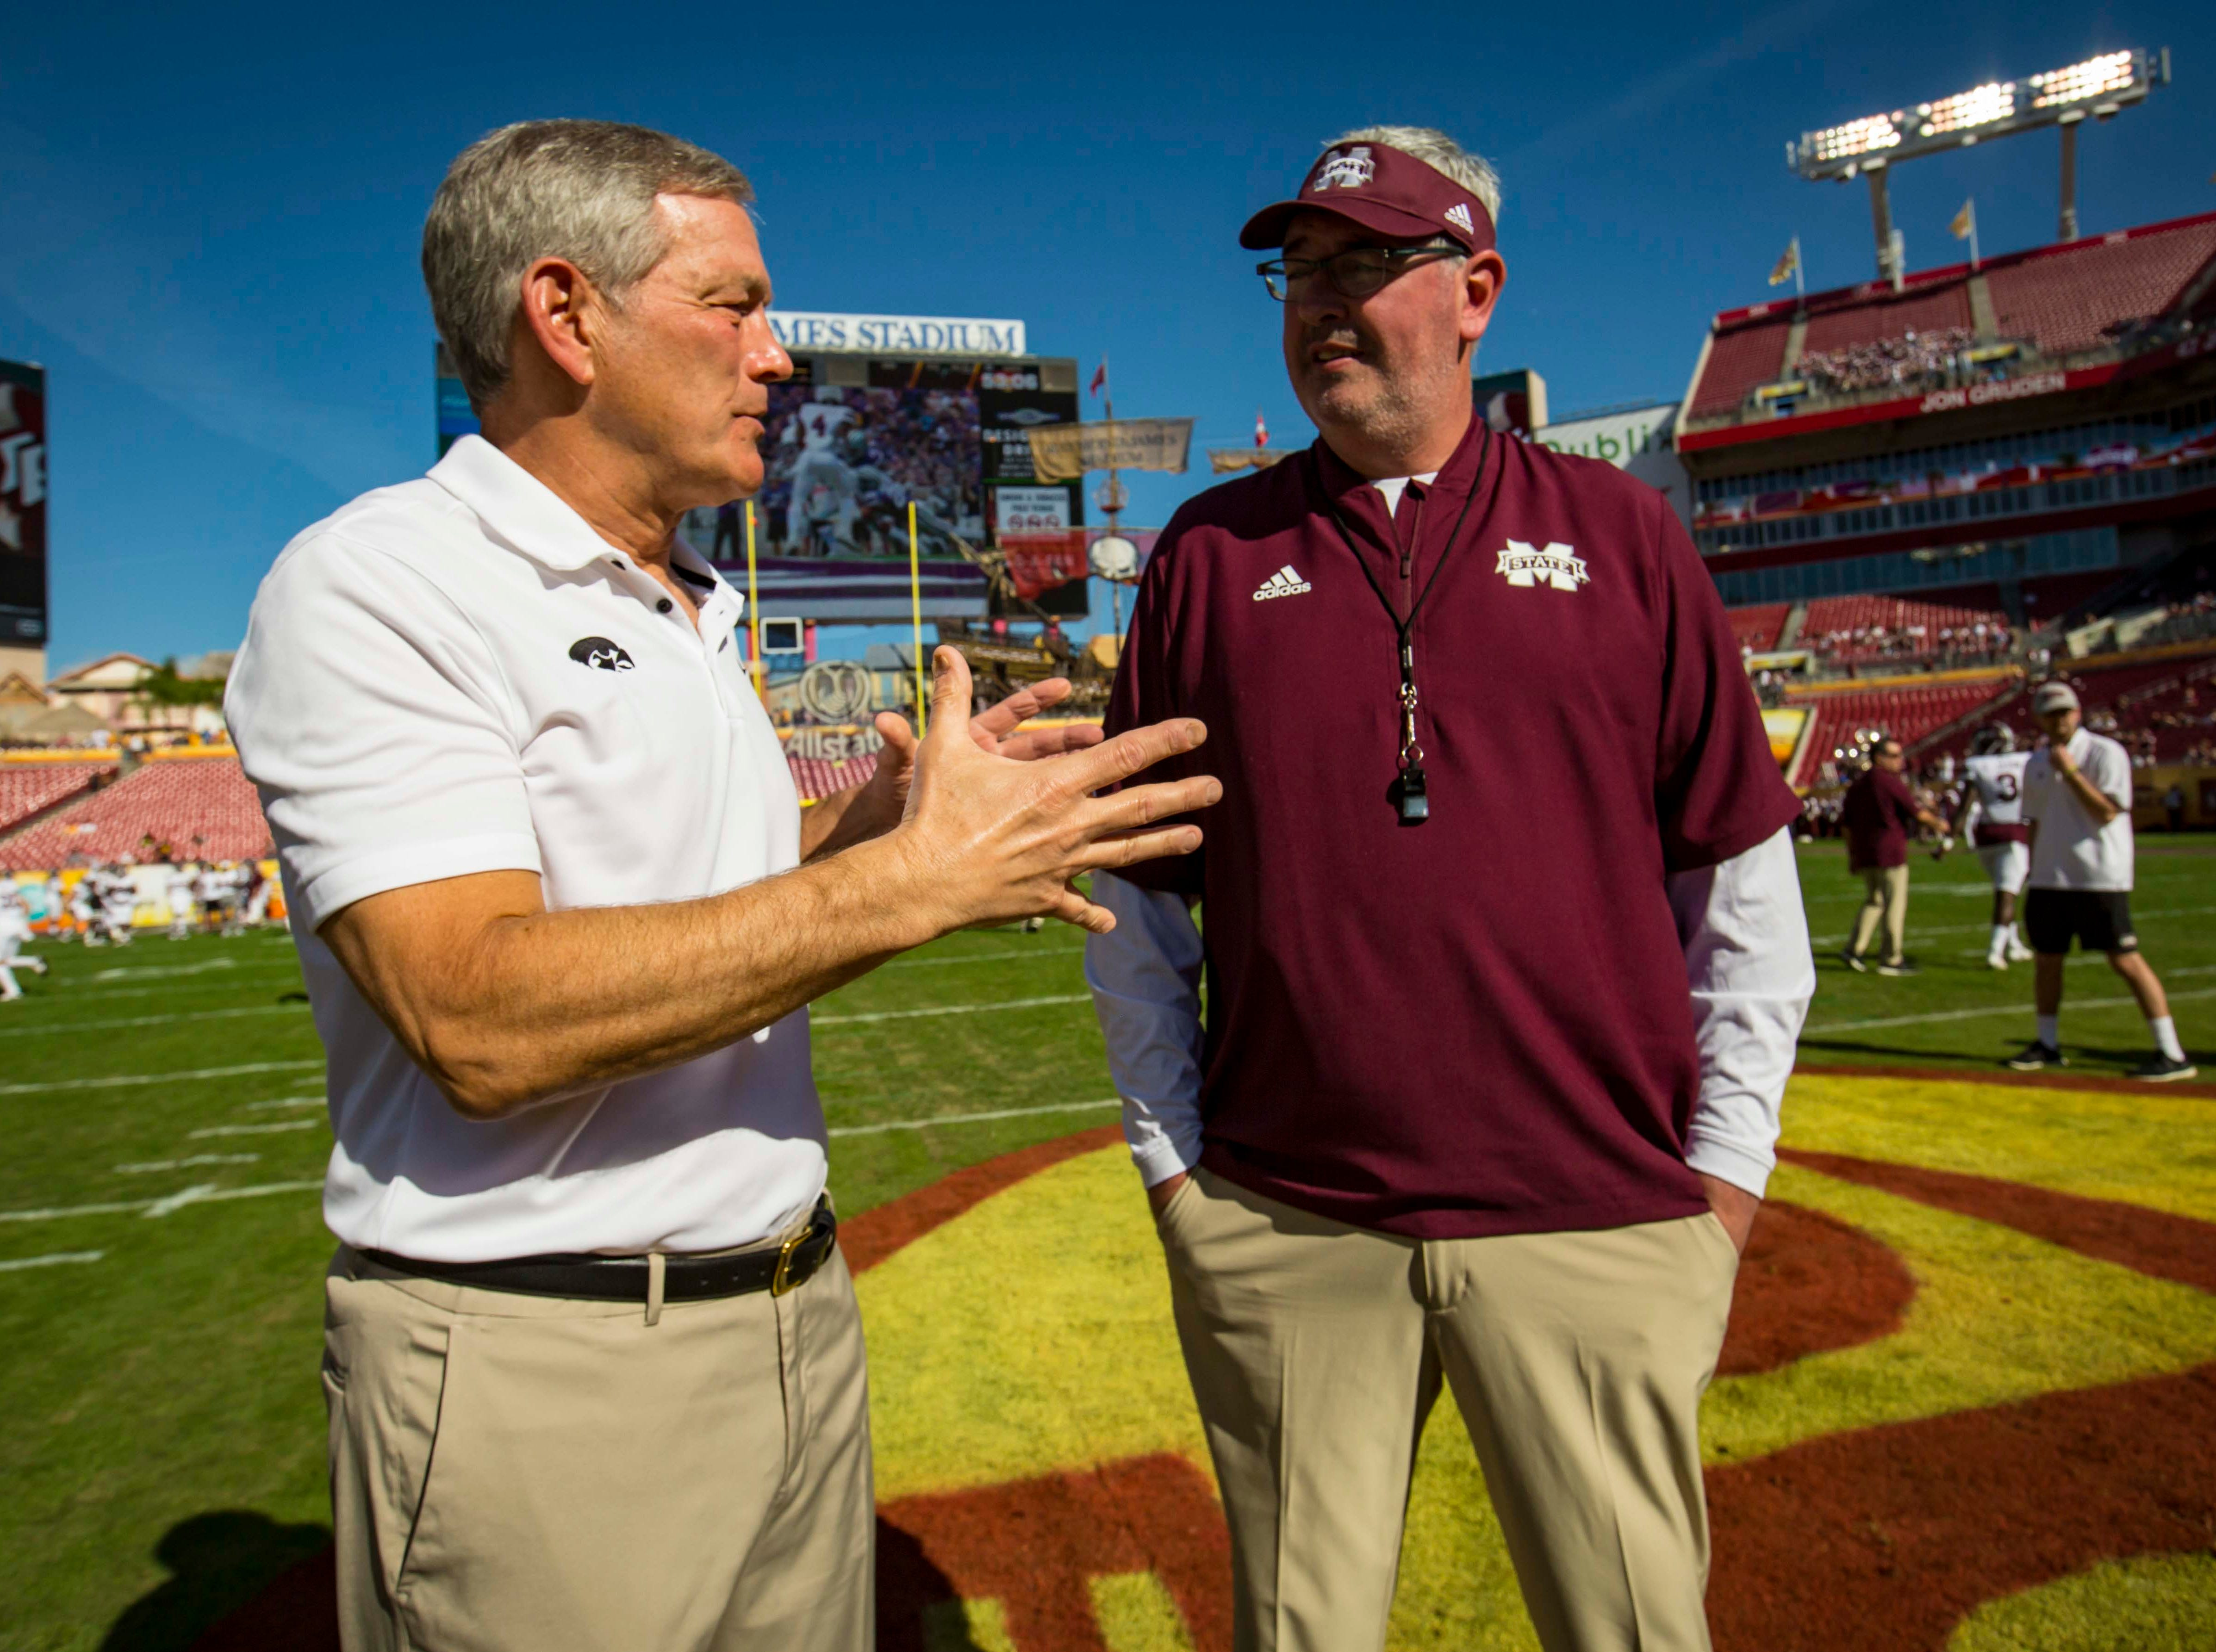 Iowa coach Kirk Ferentz and Mississippi State coach Joe Moorhead meet at midfield at the Outback Bowl Tues., Jan. 1, 2019, at Raymond James Stadium in Tampa, Florida.